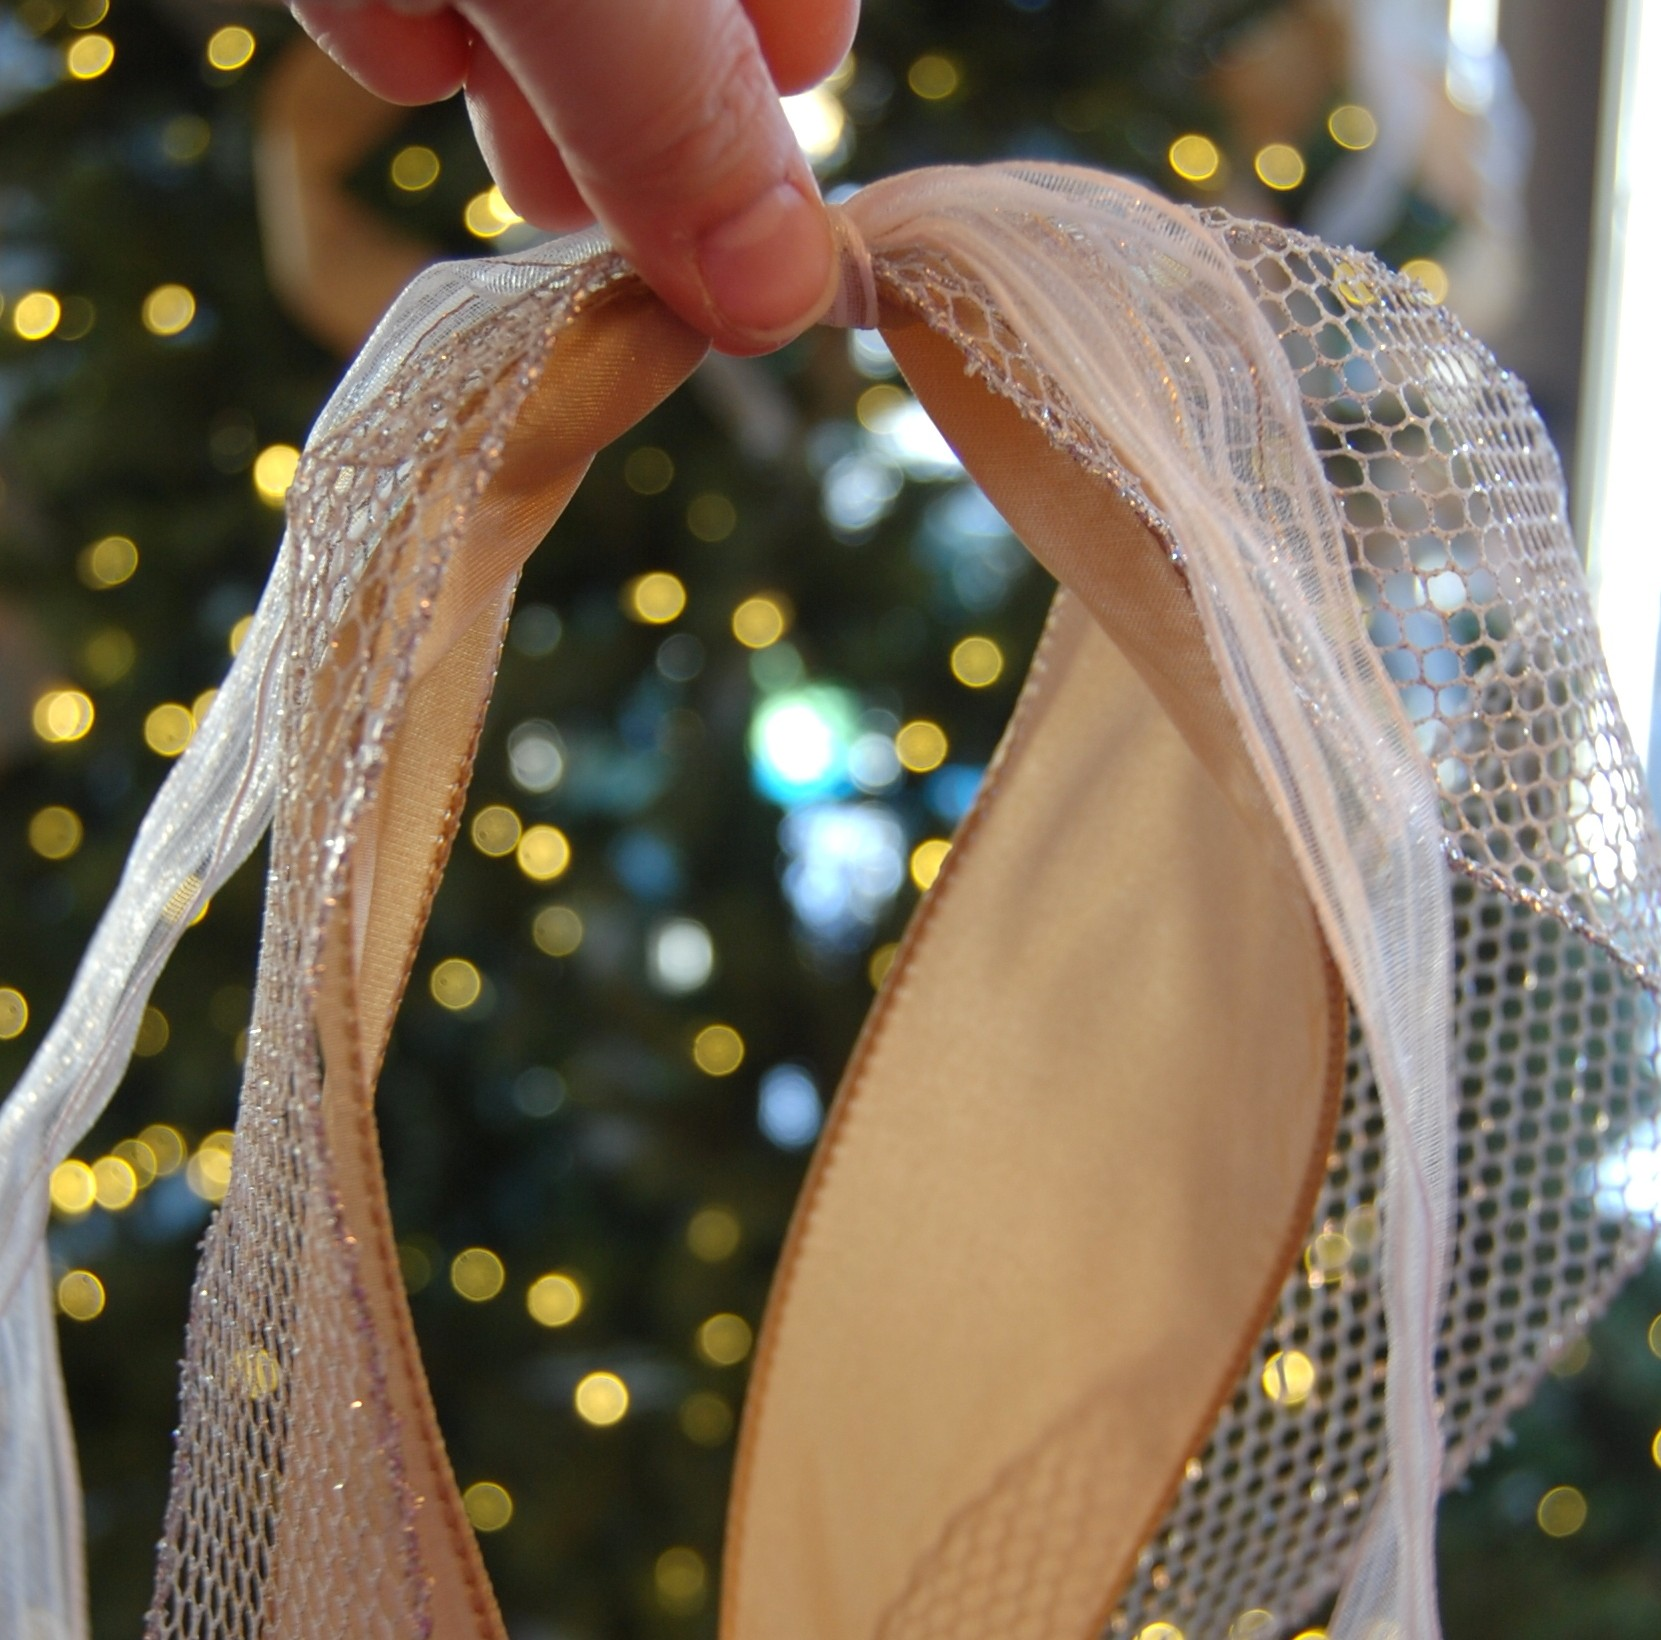 How To Add Ribbon To A Christmas Tree   A Pop Of Pretty Blog (Canadian Home  Decorating Blog   St. Johnu0027s, Canada)